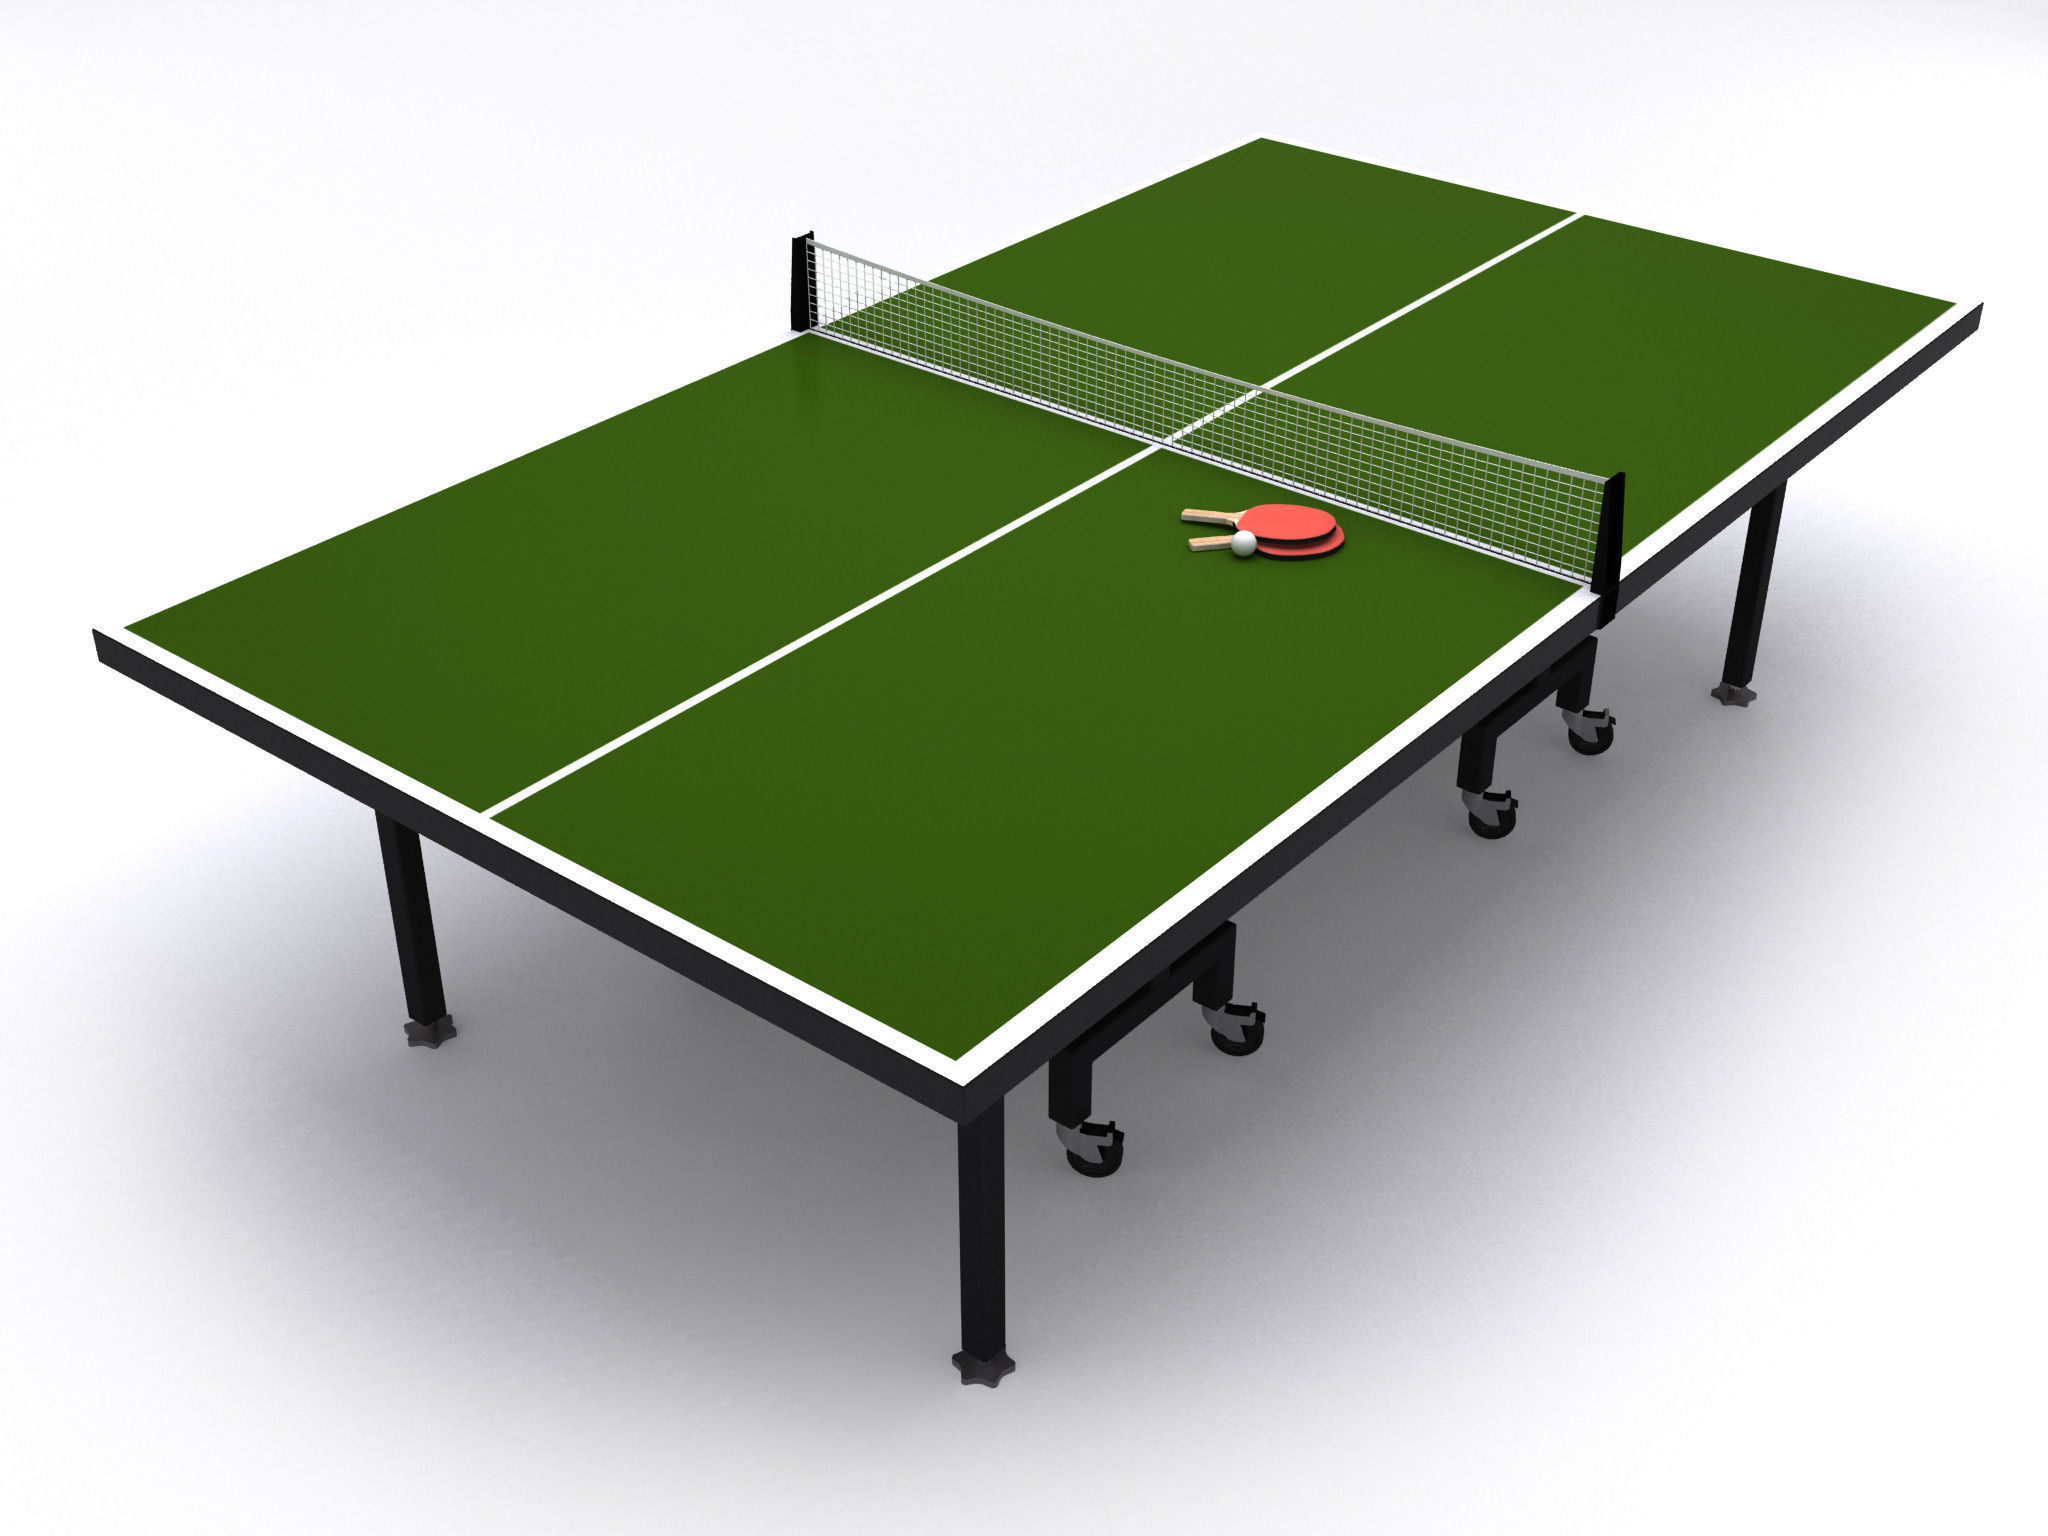 ... Table Tennis Or Ping Pong Table 3d Model Max Obj 3ds Fbx Mtl Mat 2 ...